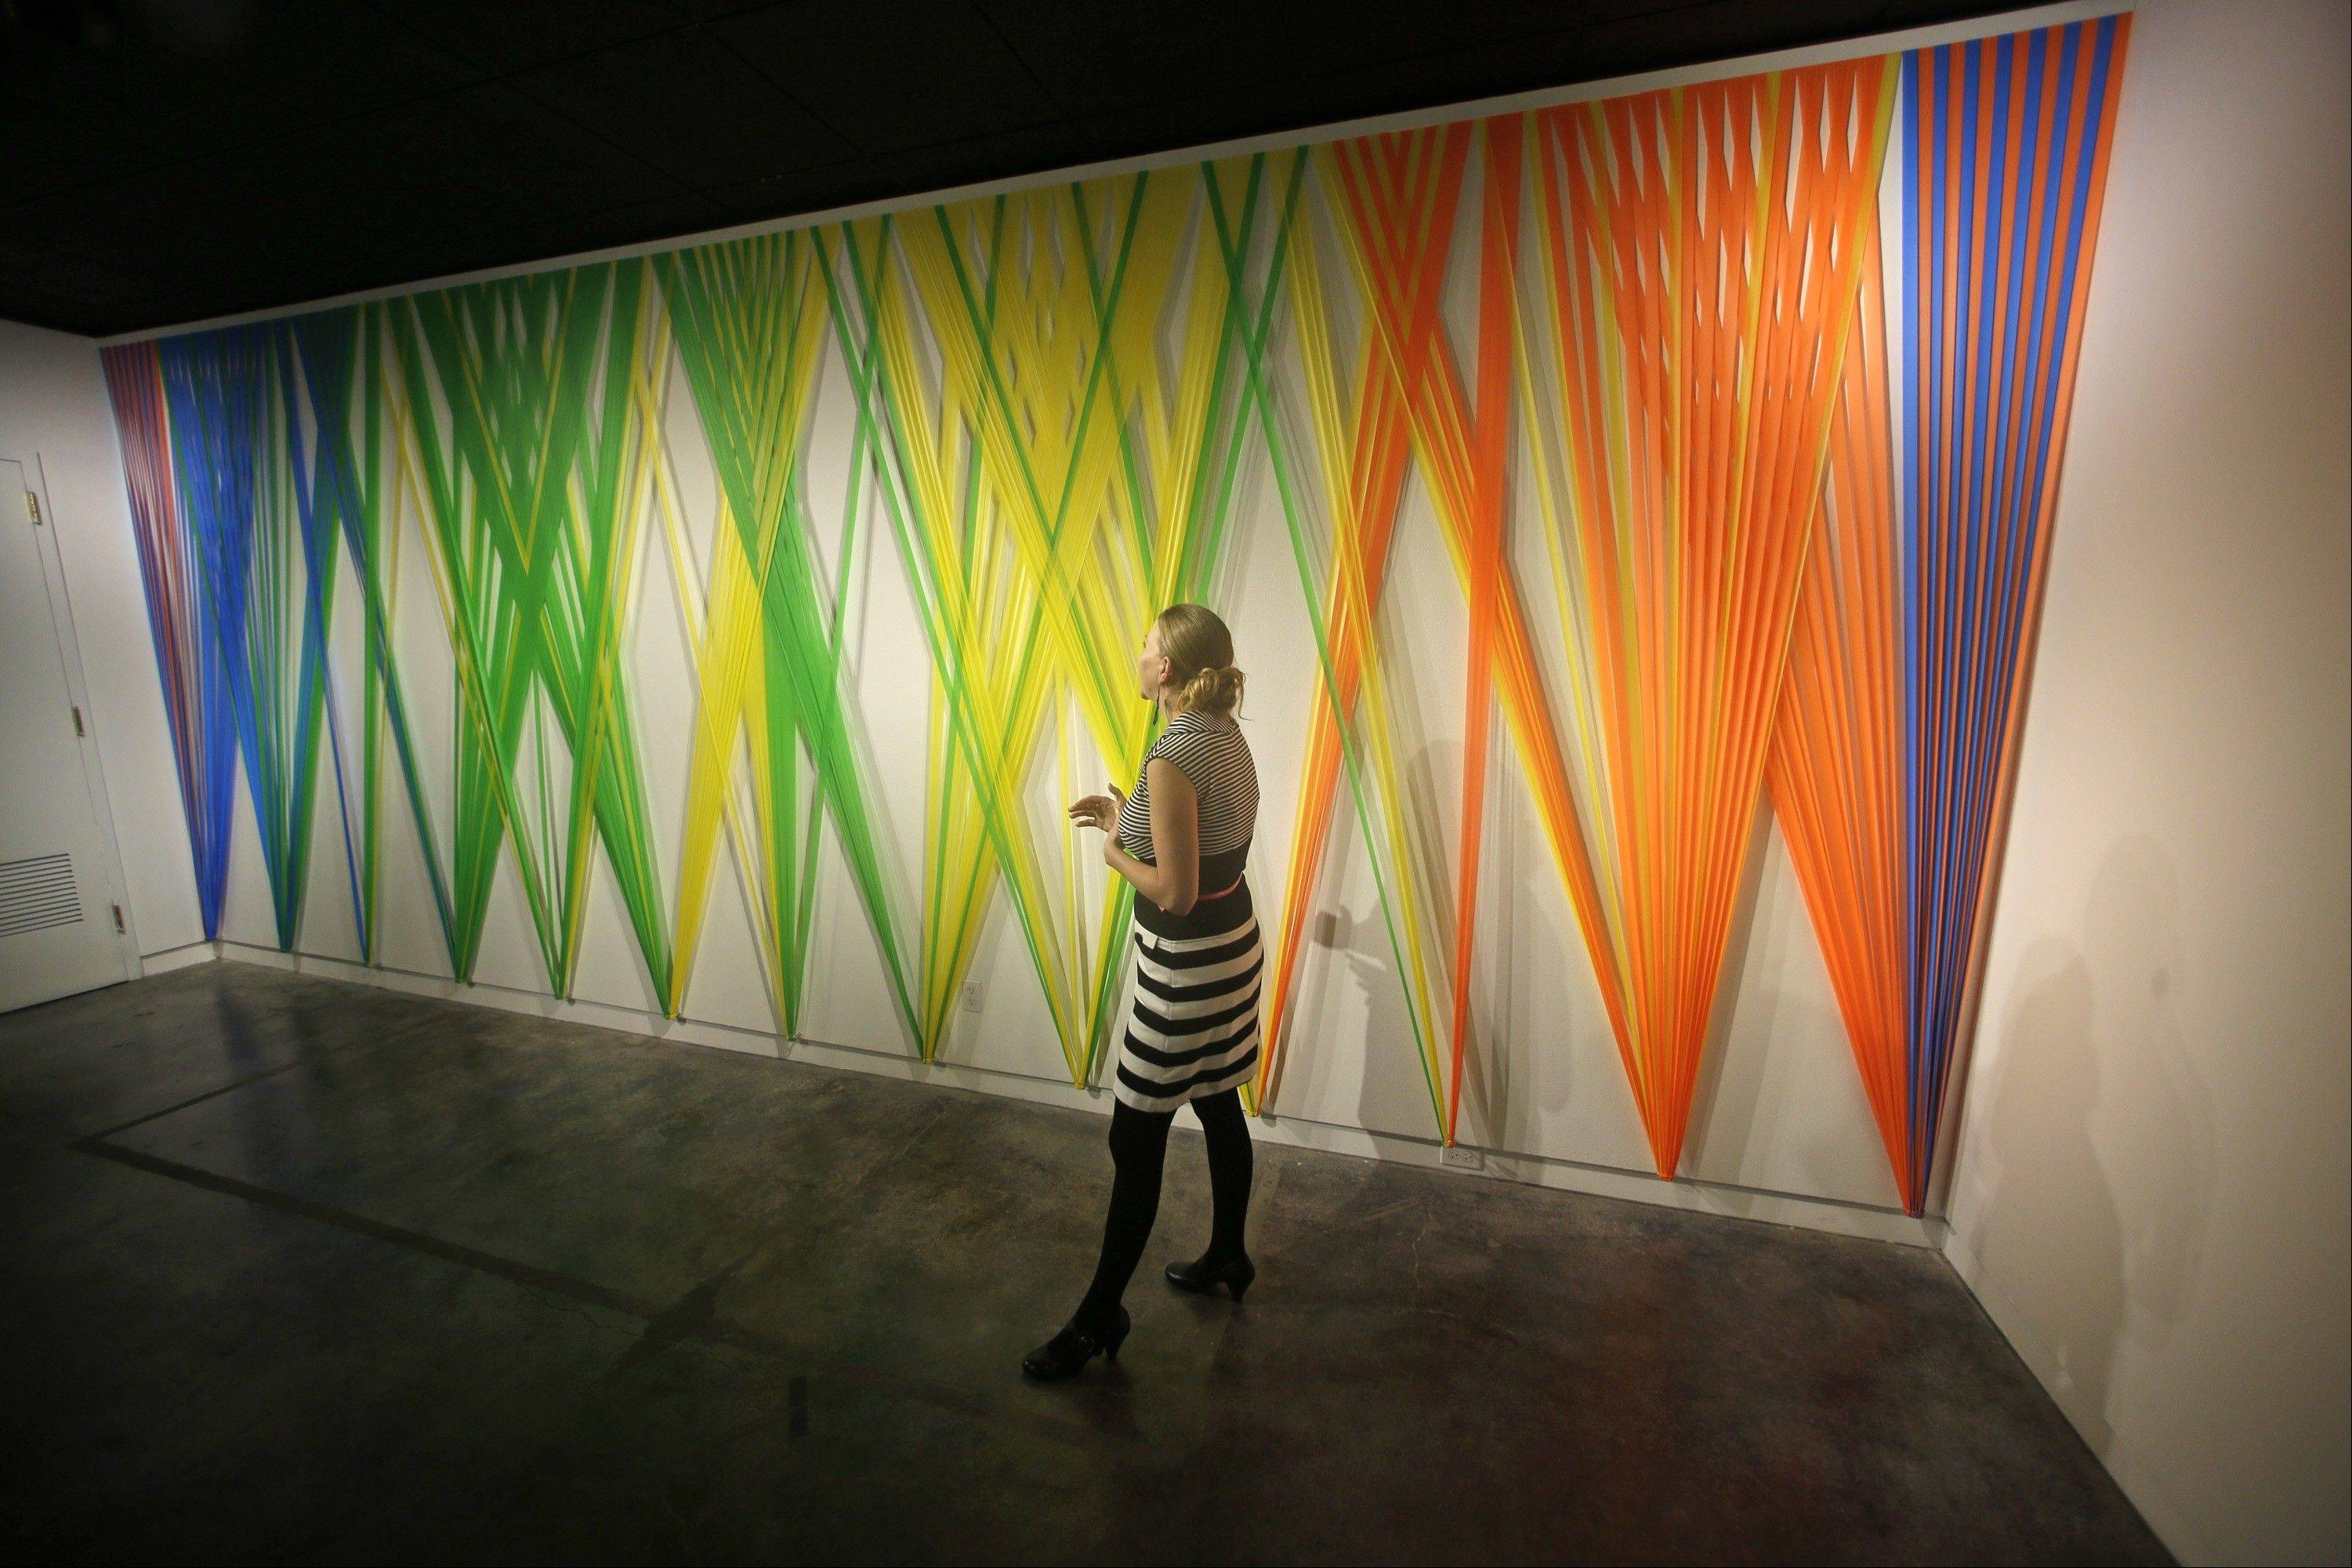 Sarina Ehrgott, marketing director, walks pass the Megan Geckler exhibit at the Utah Museum of Contemporary Art.